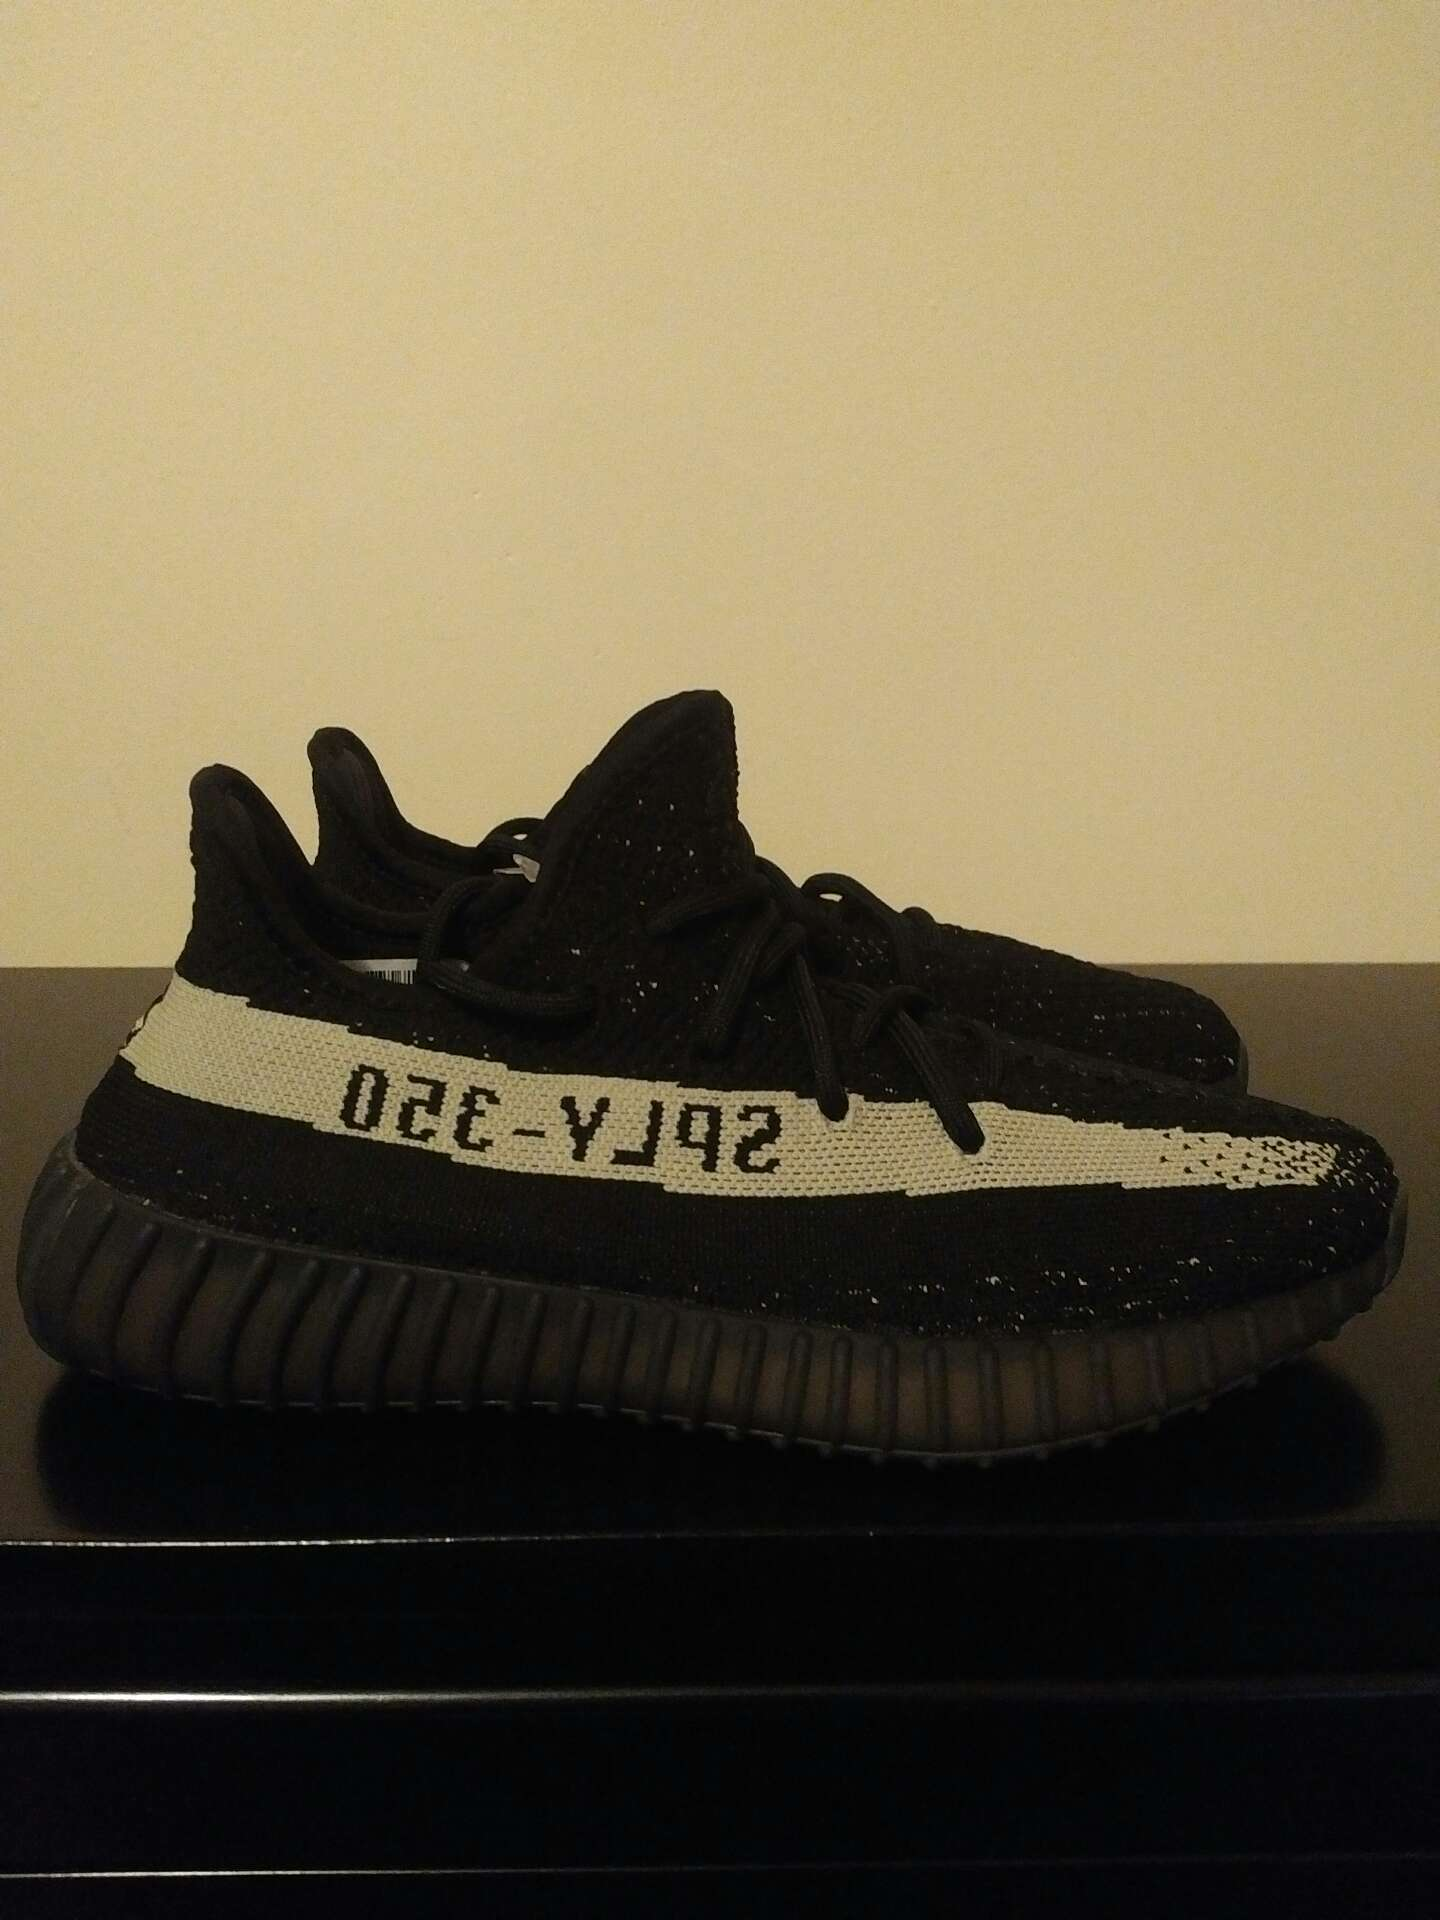 ATC Adidas Yeezy 350 v2 'Black White' BY 1604 12.17.2017